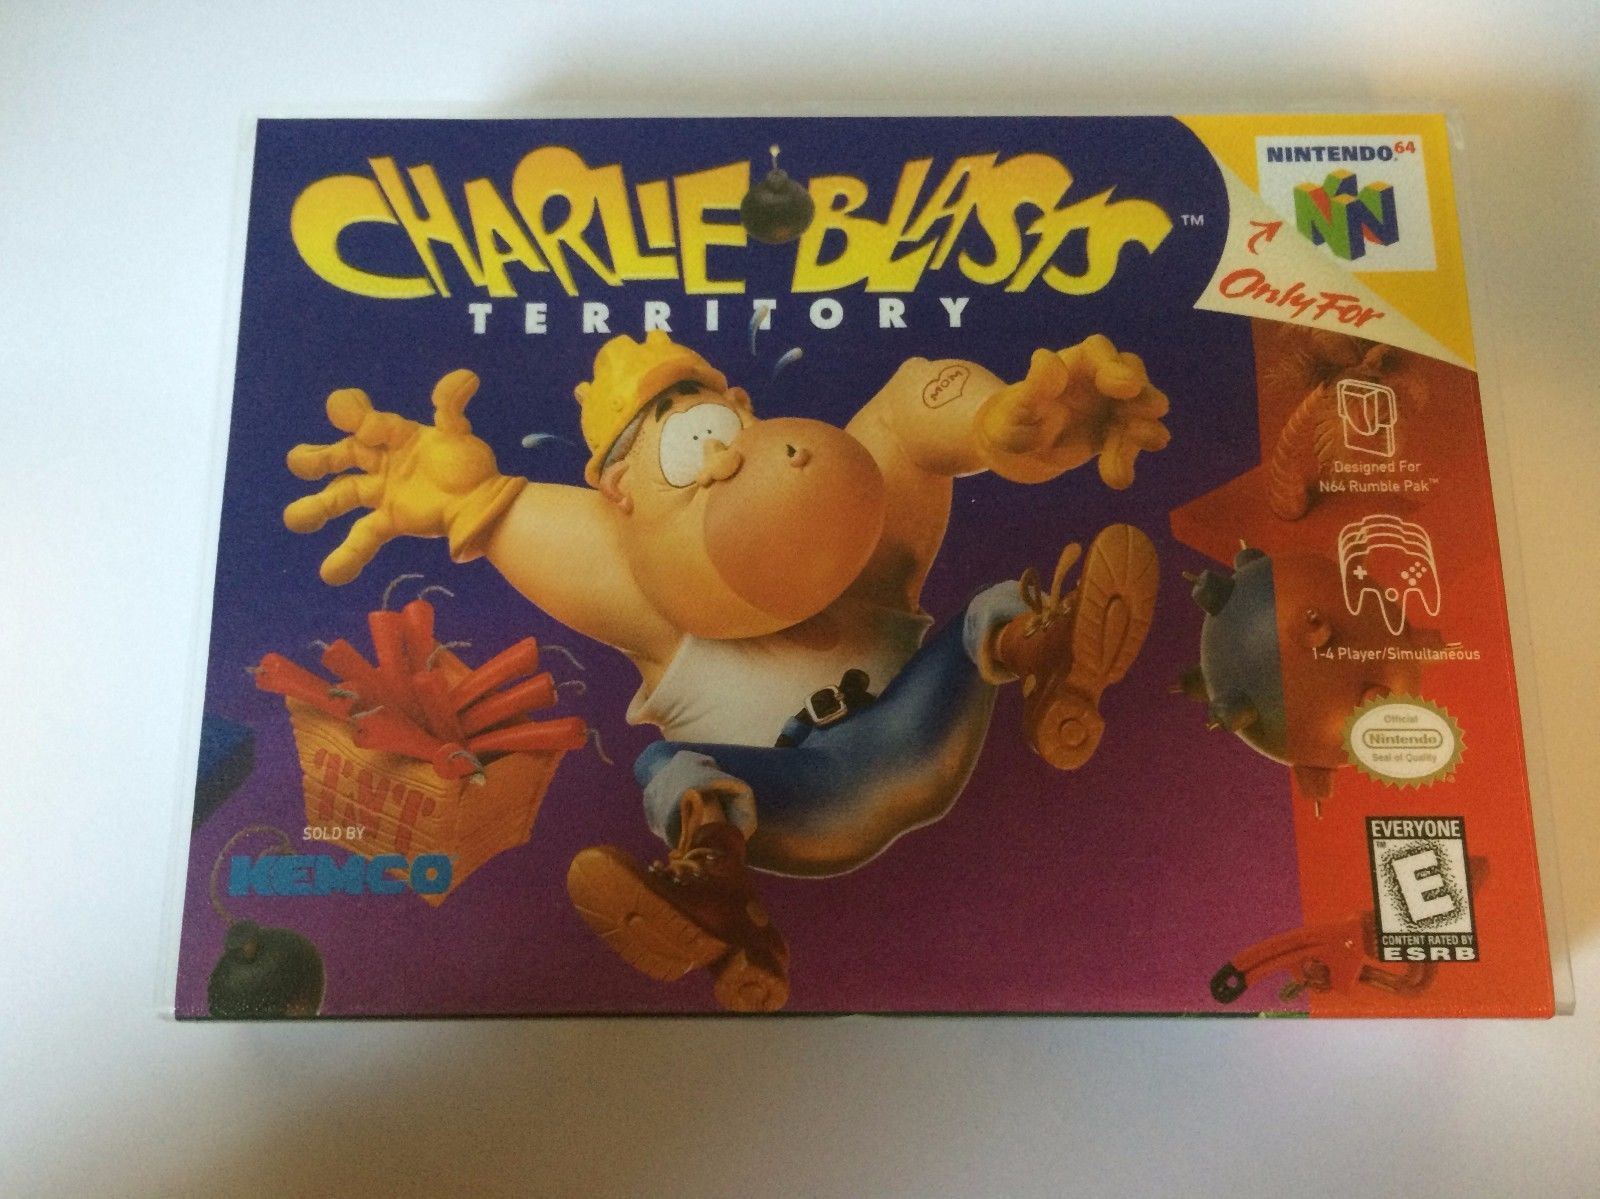 Charlie Blasts Territory - Nintendo 64 - Replacement Case - No Game